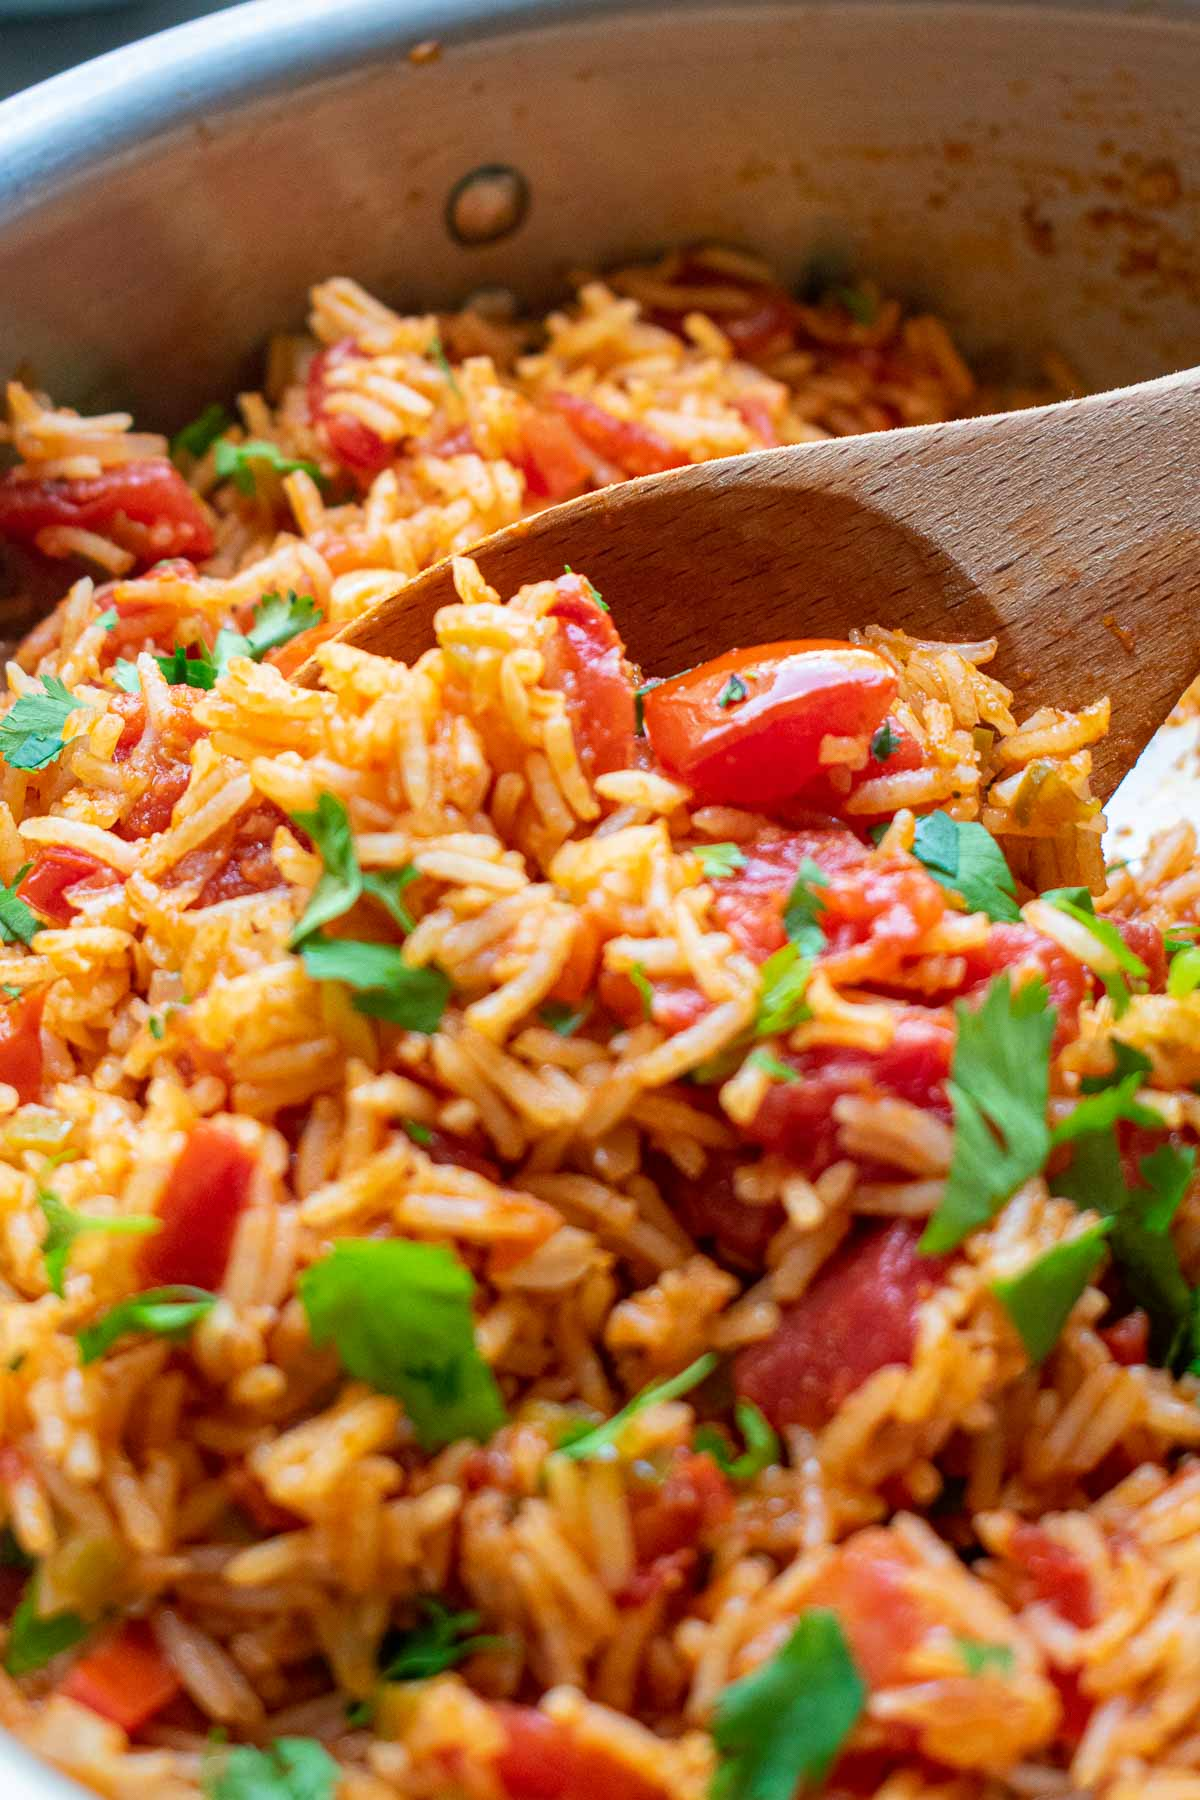 Very close up view of a spoonful of Mexican rice.